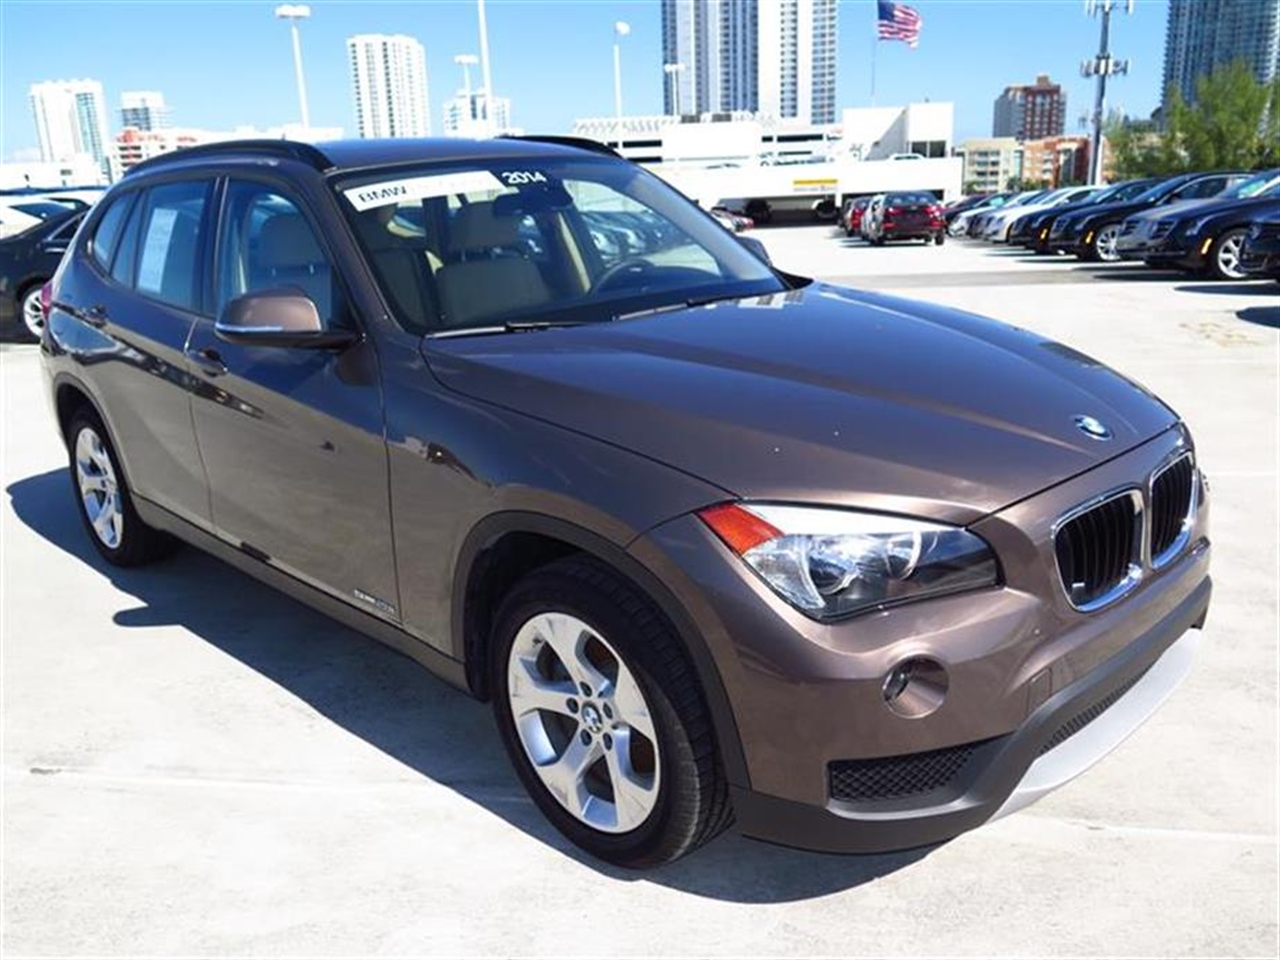 2014 BMW X1 RWD 4dr sDrive28i 9342 miles 2 Seatback Storage Pockets 3 12V DC Power Outlets LEAT